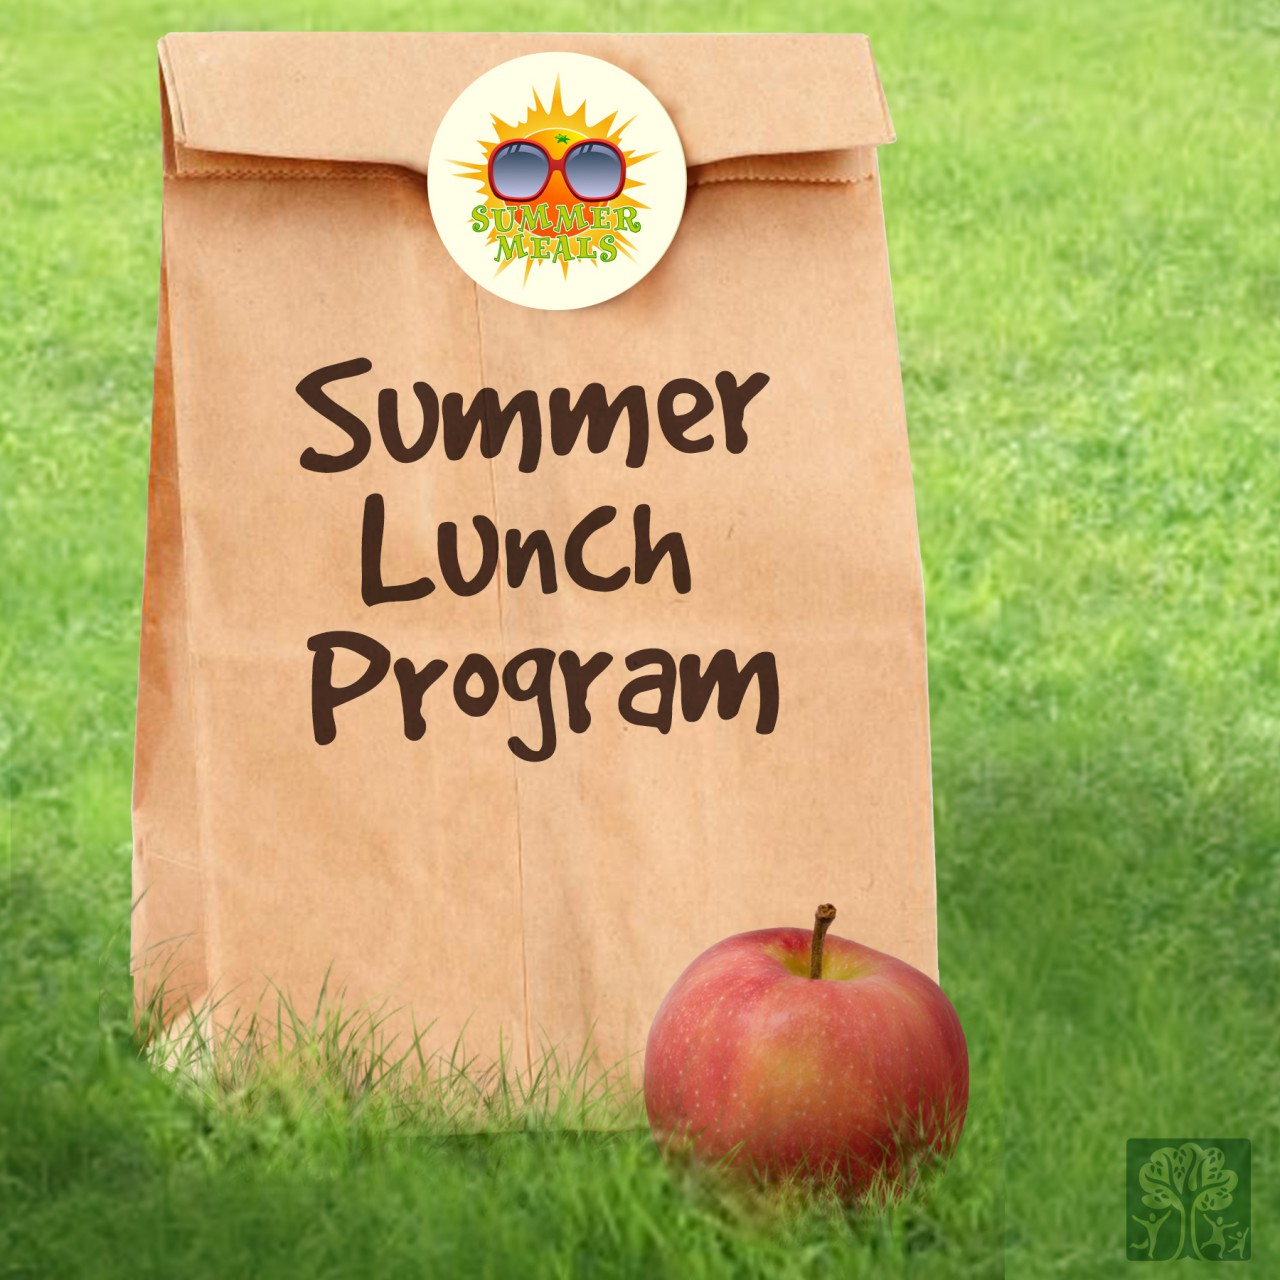 Gurnee Park District Summer Lunch Program